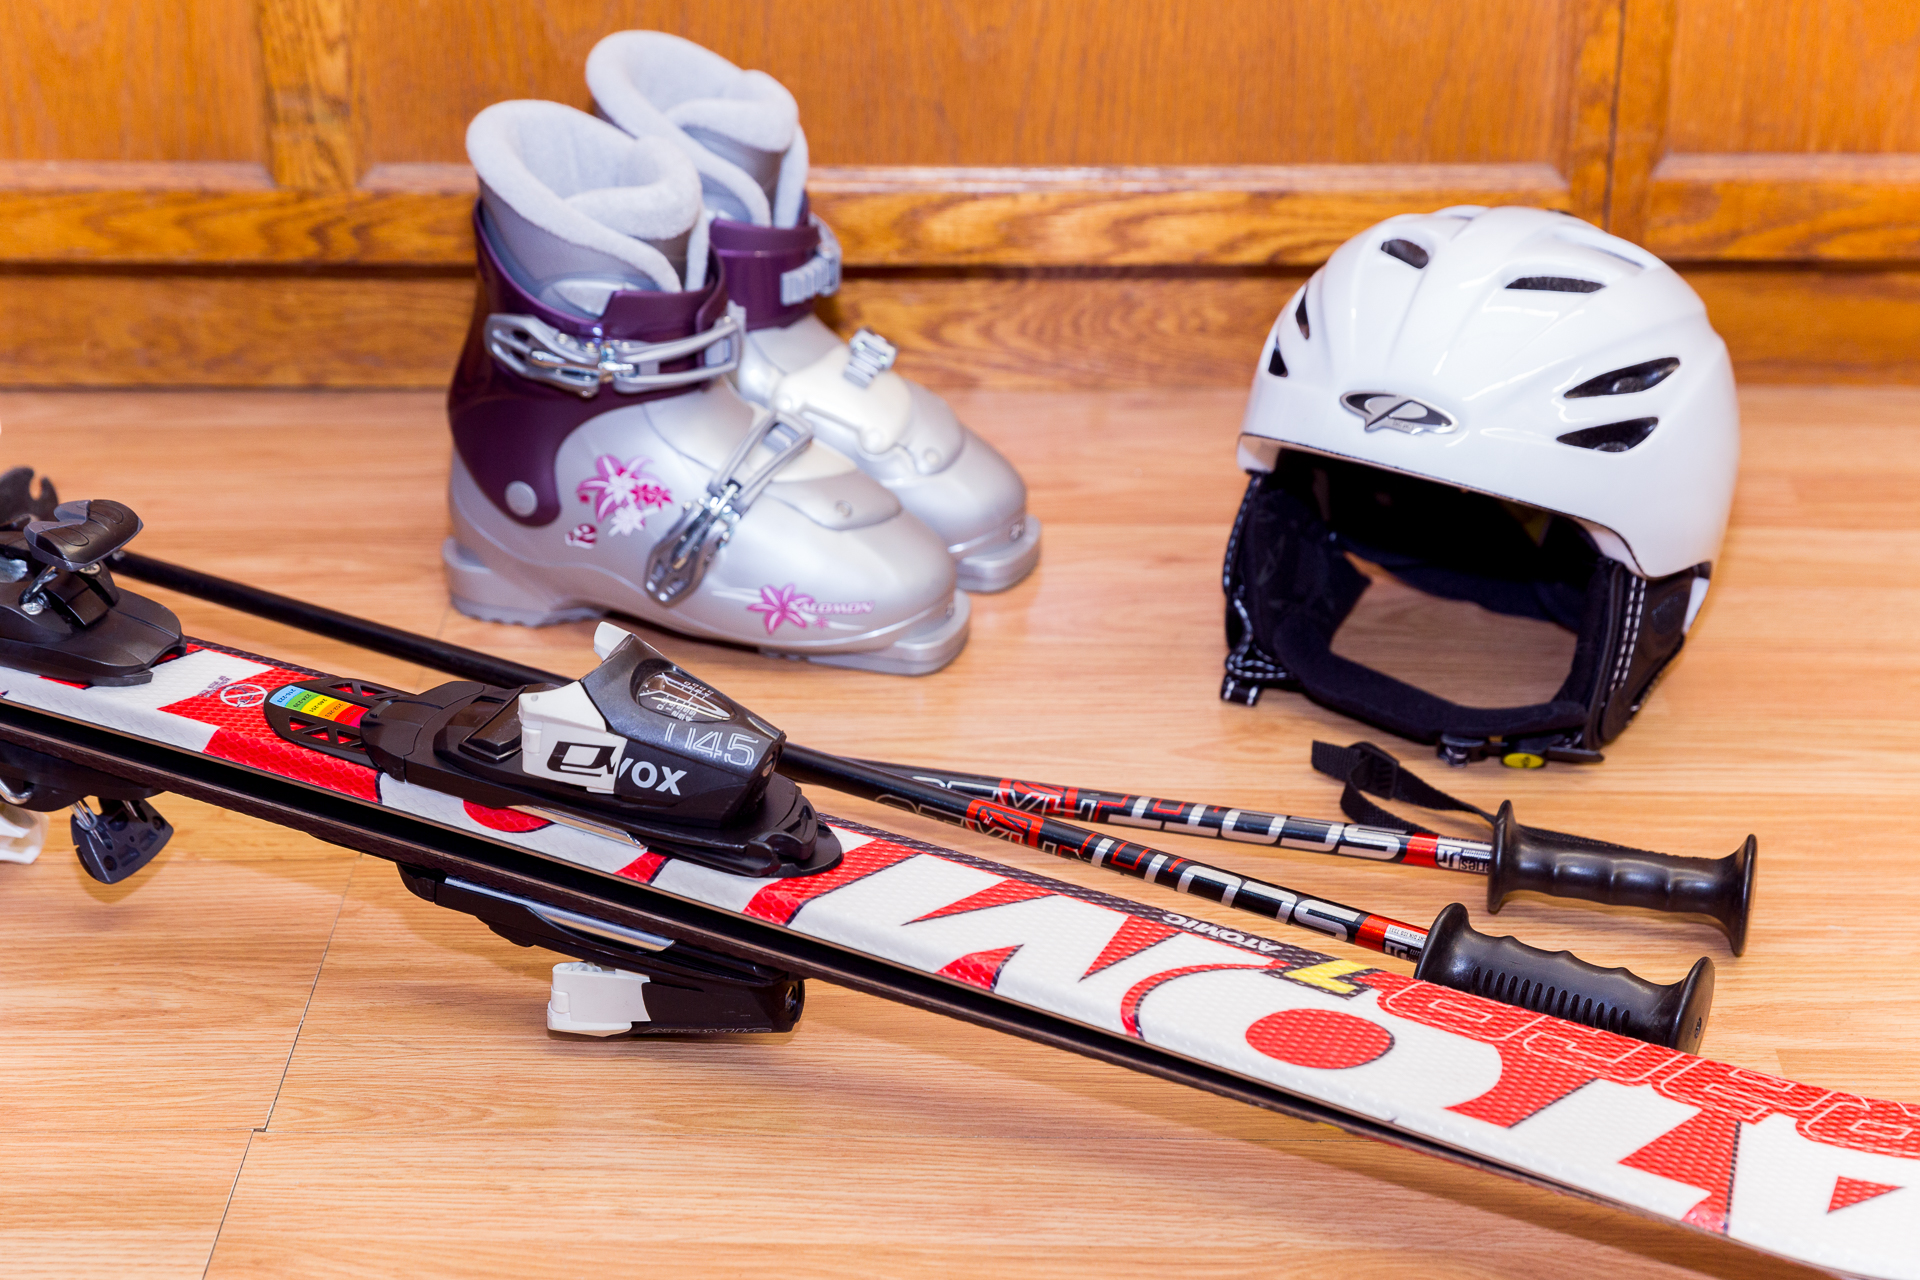 KID'S SKI & SNOWBOARD PACKAGE (GIRLS) - 80CM - 130CM  // Kid's Performance Skis ranging from Atomic, K2, Head, & Volkl // Kid's Performance Snowboards ranging from Burton, Lamar, Sol, K2, Ride, & Rossi   RATES : // We do not charge for the day you pick up or return. Free travel days! // Helmets are an additional $7 for the first day & $3 every day after that. 1 DAY - $21.99 2 DAY - $31.99 3 DAY - 41.99 EXTRA DAYS - $10.00 (Per Day) SEASON - $169.99 Kid's Package picked up prior to January 1, 2019 SEASON - $139.99 Kid's Package picked up after January 1, 2019